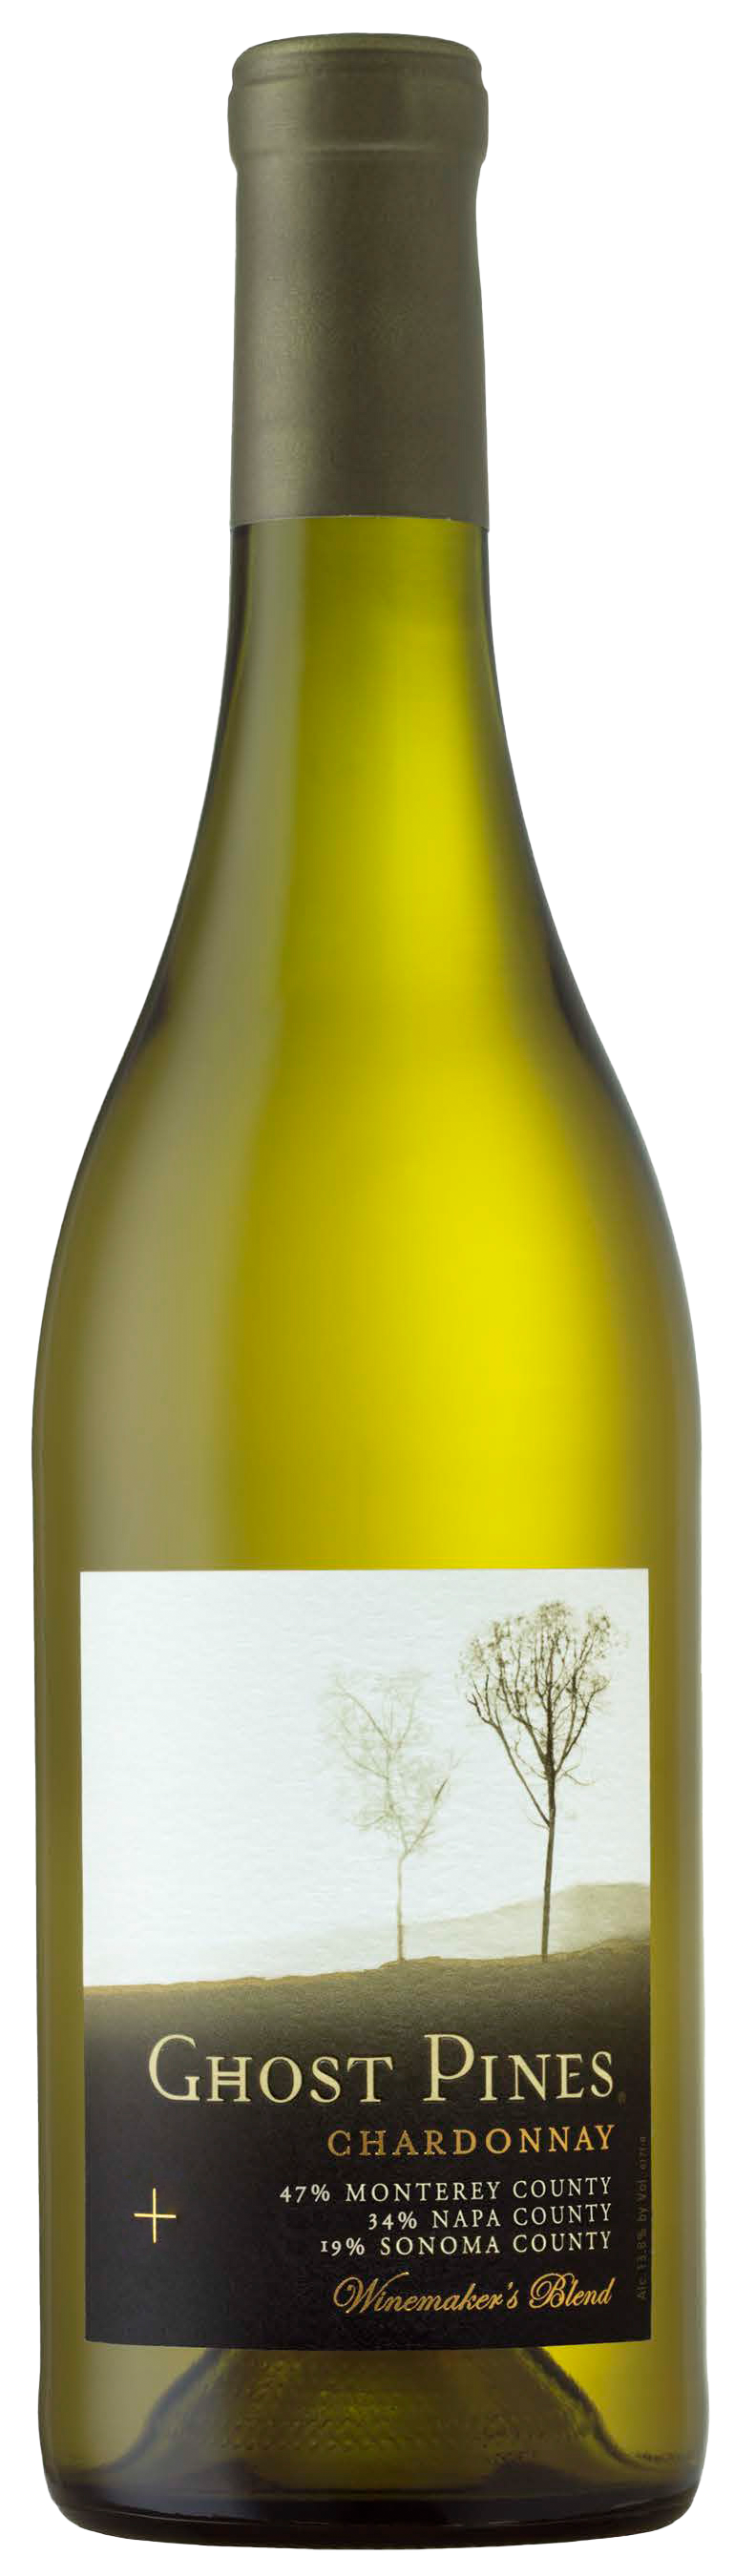 Ghost Pines by L.M. Martini   Chardonnay